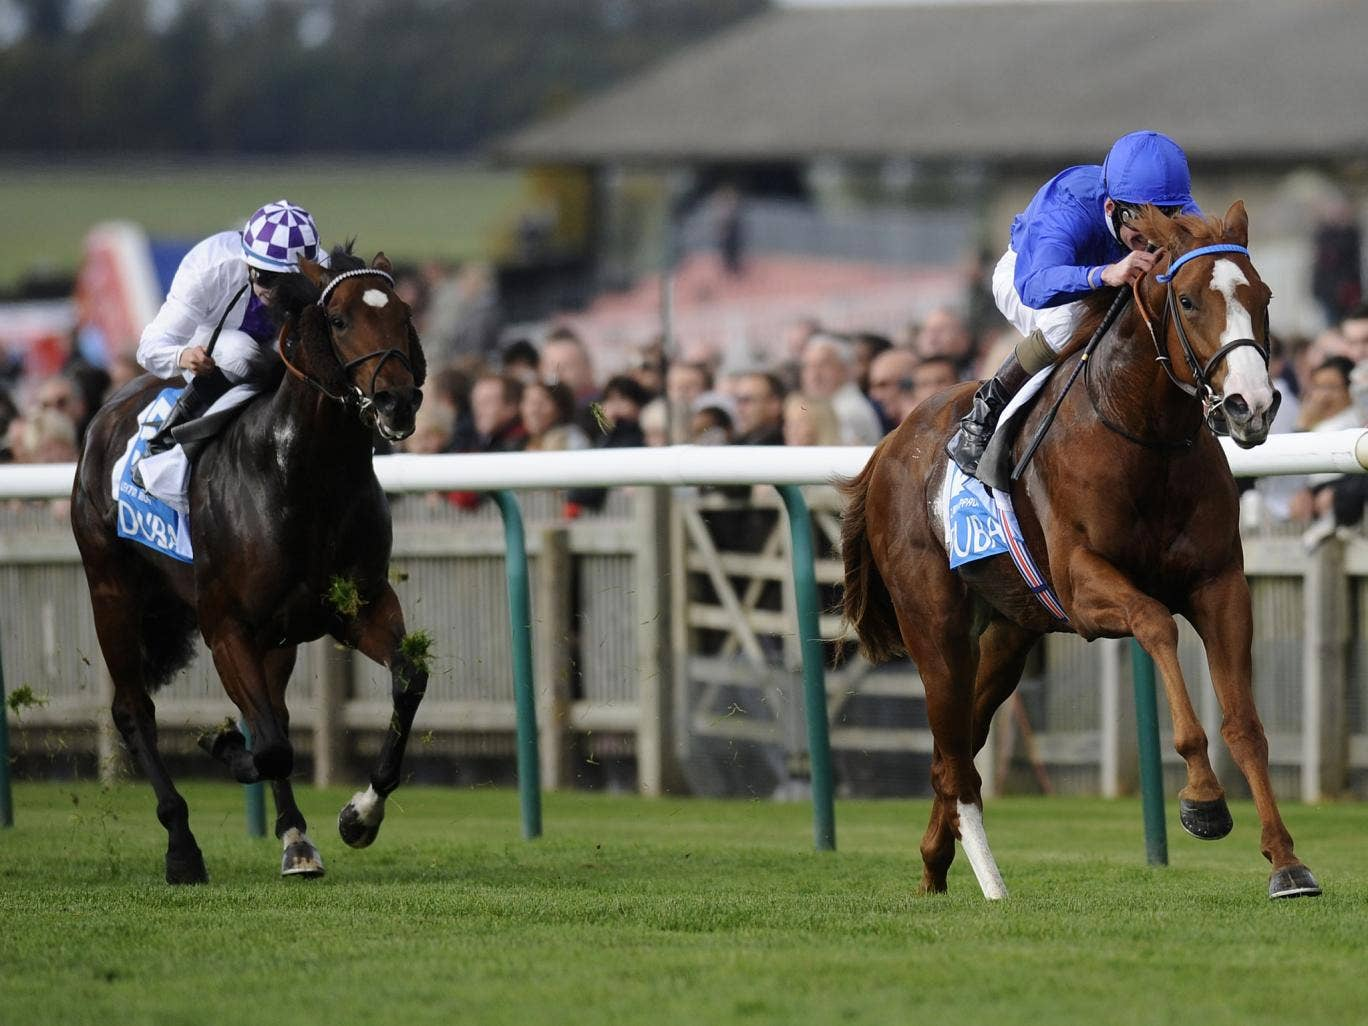 Dawn Approach winning in Godolphin blue at Newmarket